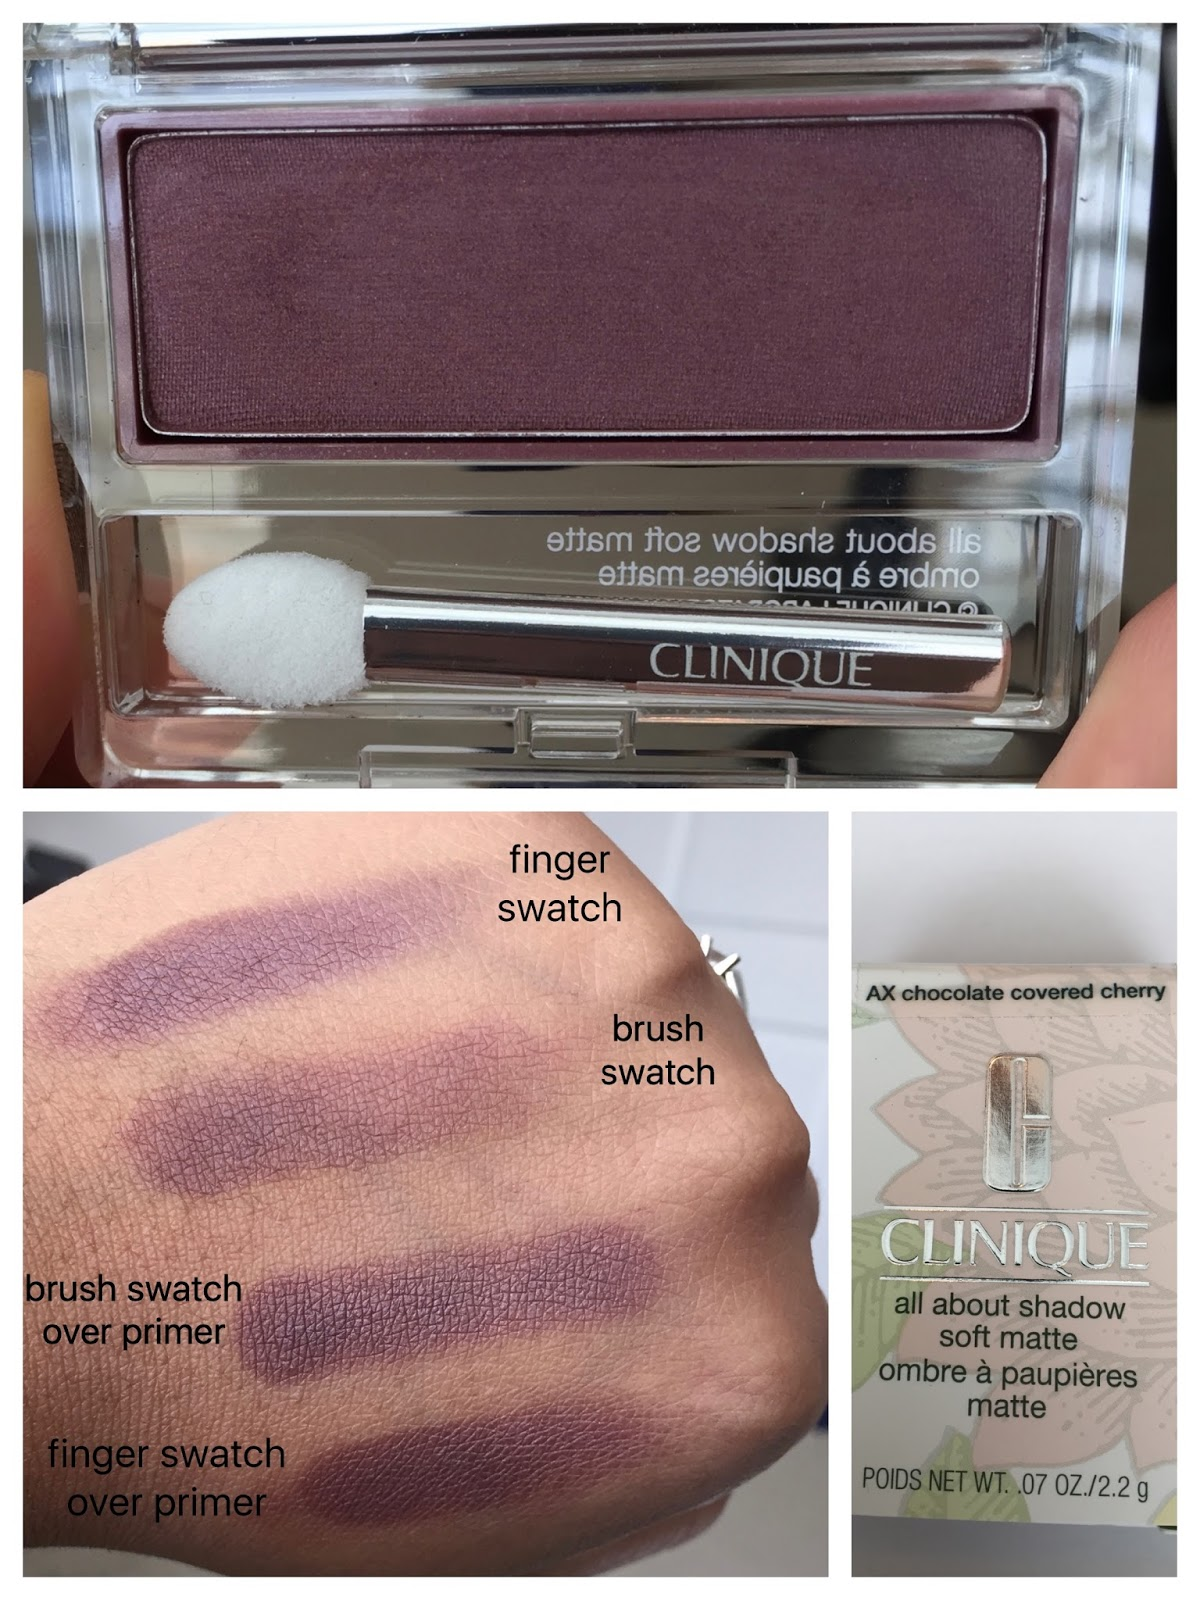 Clinique Chocolate Covered Cherry Eyeshadow